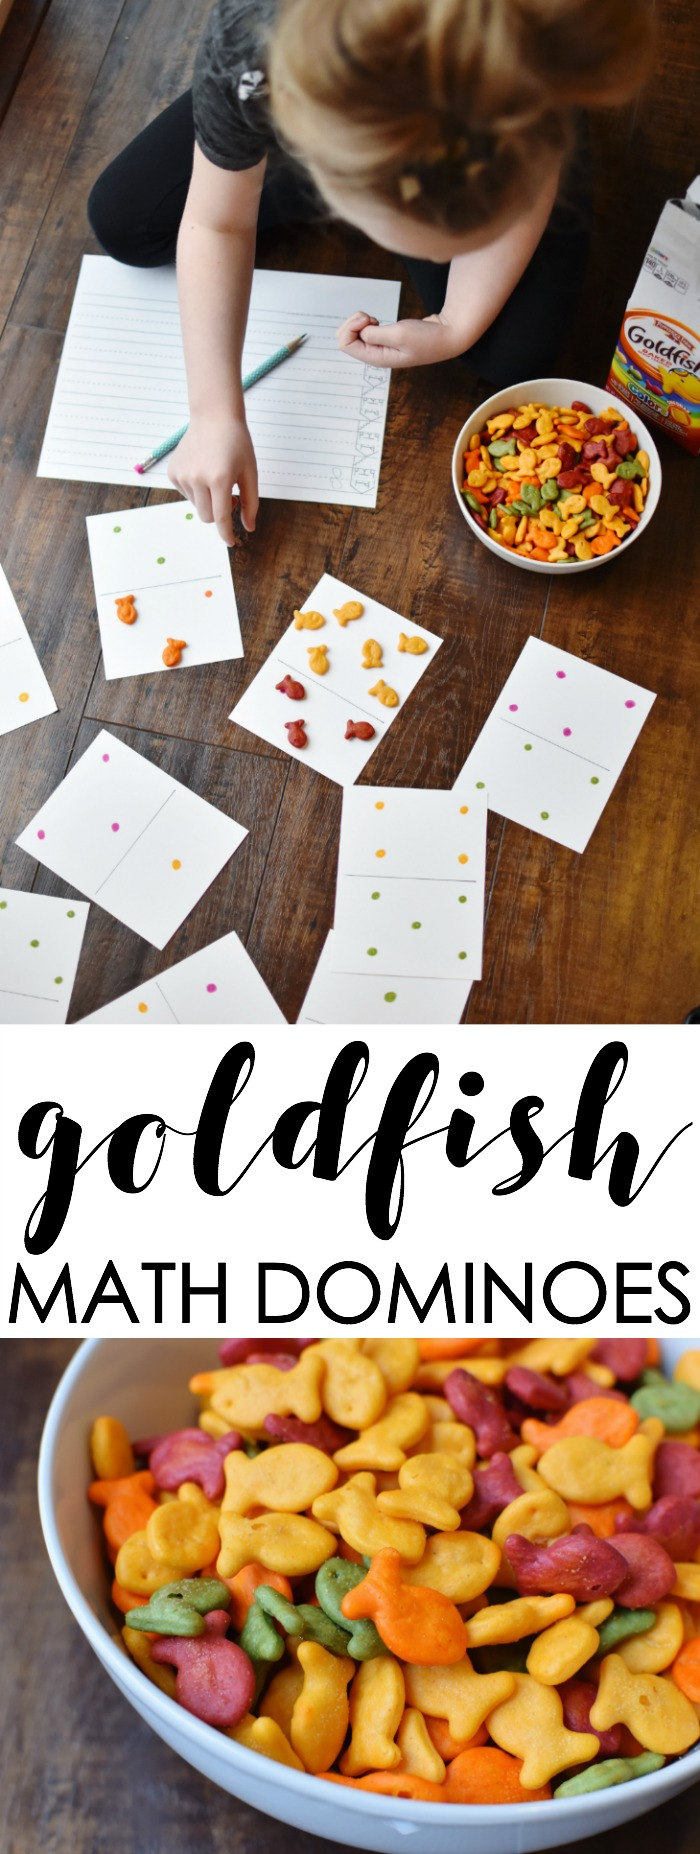 goldfish-math-dominoes